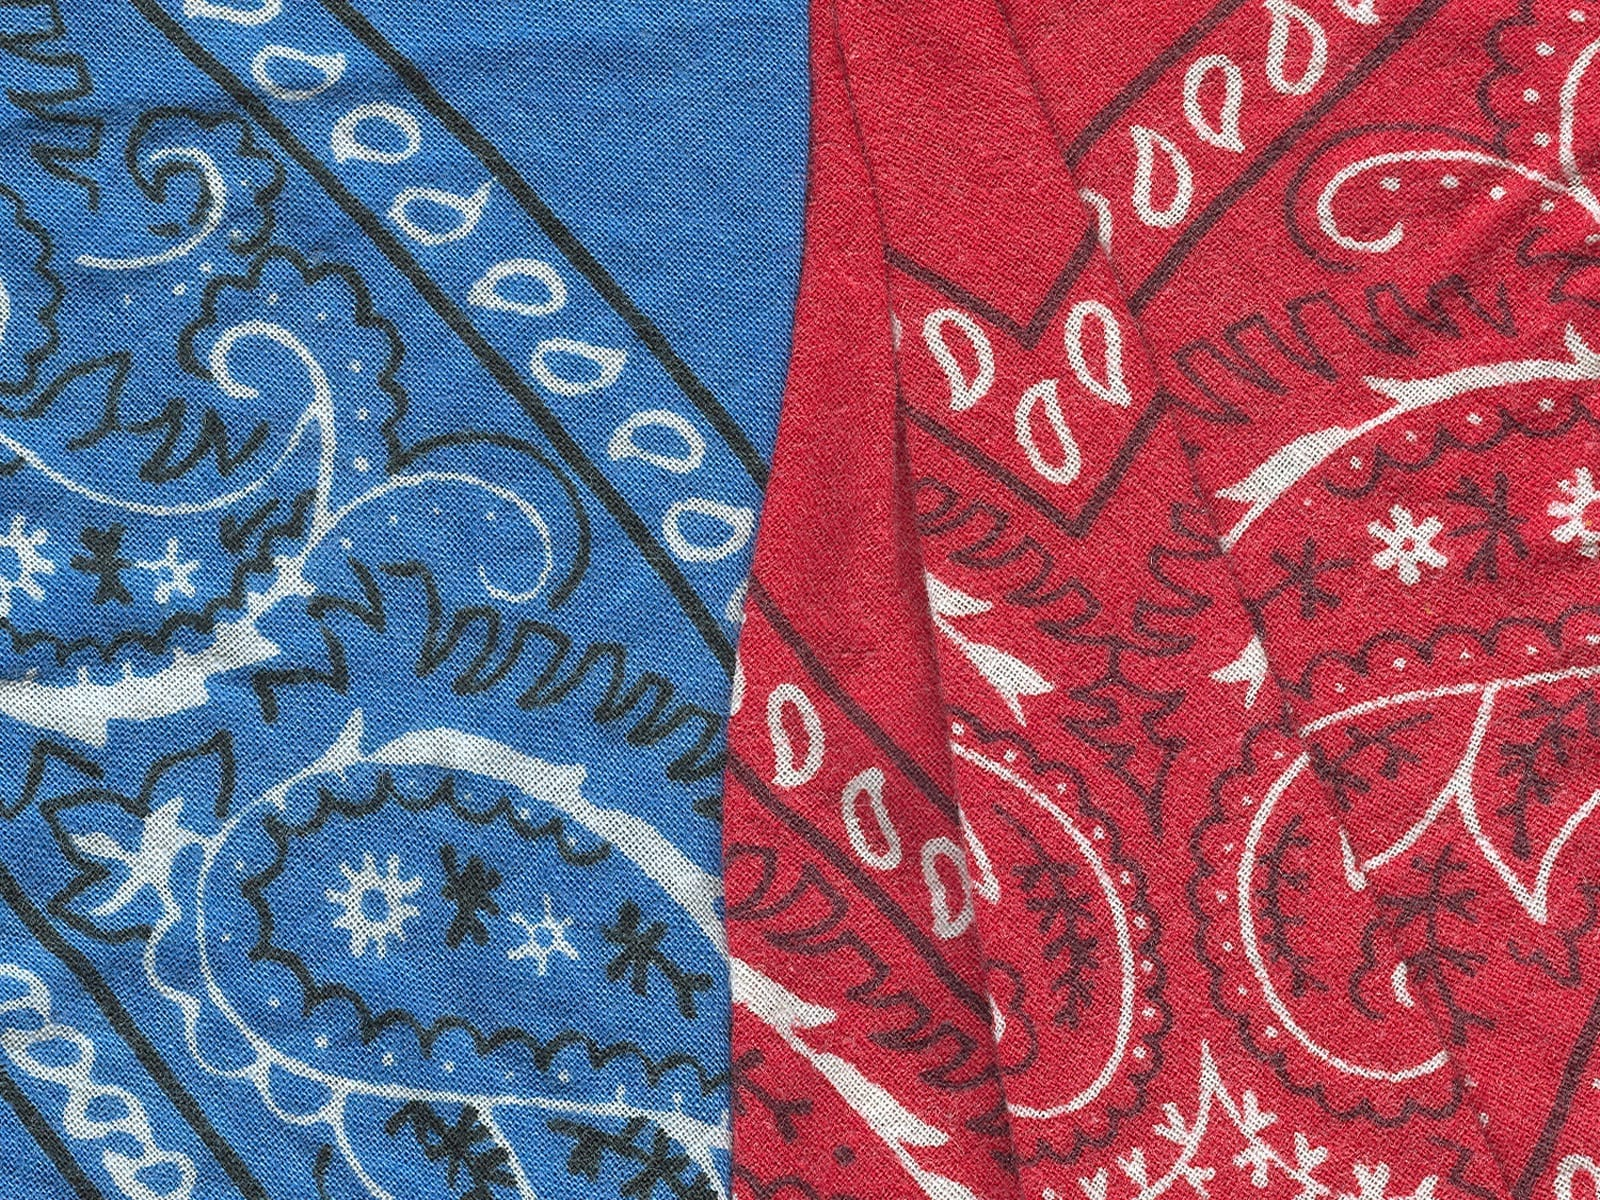 Blue and red bandanas - colors for the Crips and Bloods respectively; image by Felixed (Own work), Public domain, via Wikimedia Commons. Use of this image does not suggest photographer is in or supports gangs.